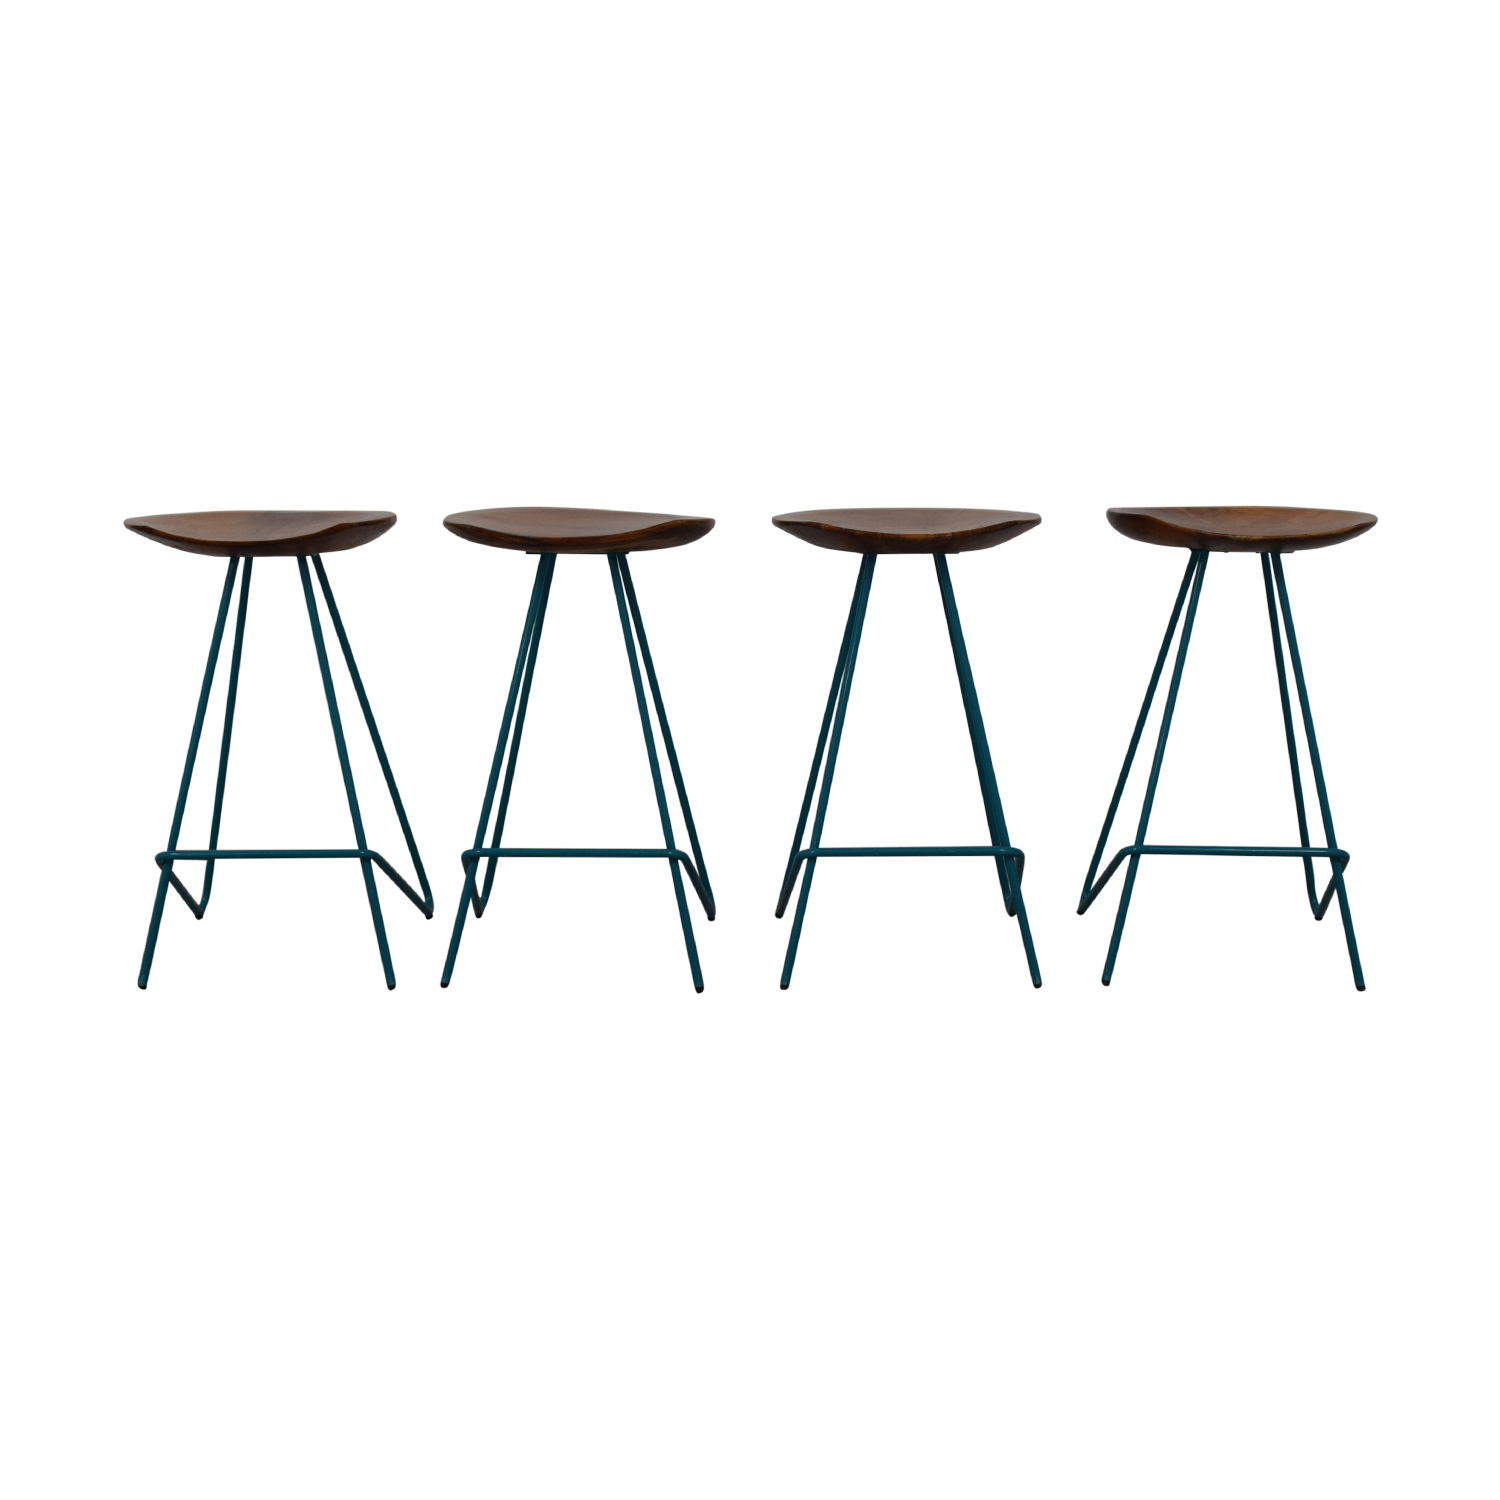 From The Source Teal Perch Bar Stools Nyc